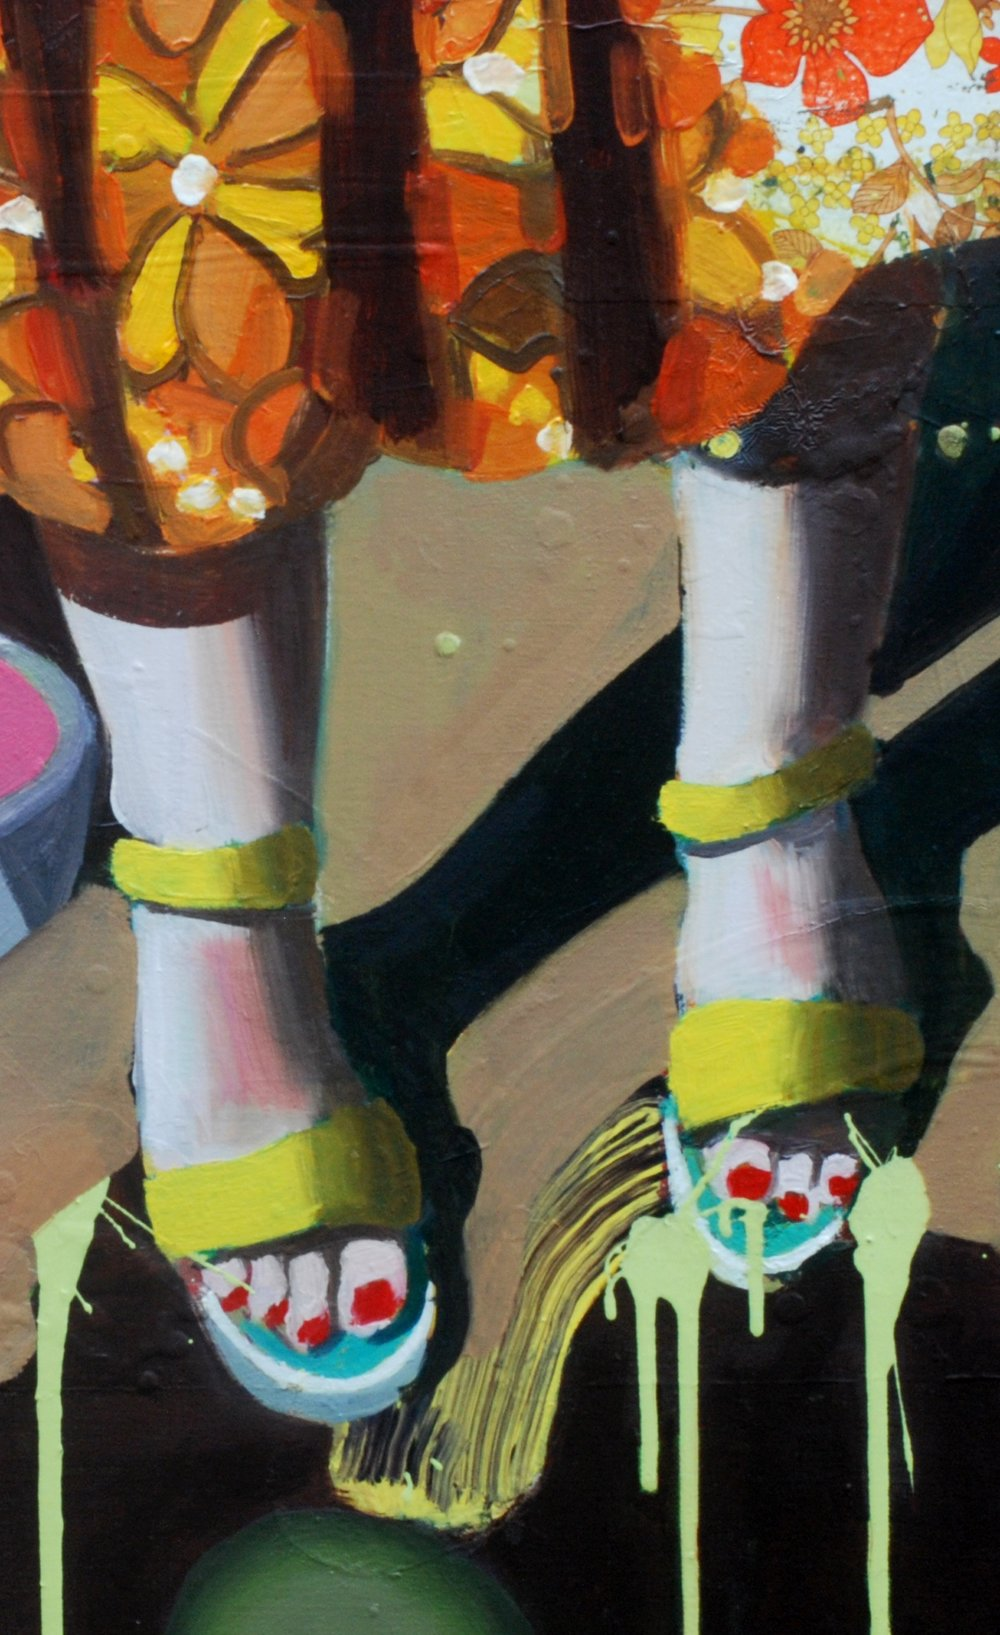 Jake Clark, Yellow Sandals, 2016, Oil and vinyl on canvas © Jake Clark, Courtesy of Collyder Bristow Gallery, London